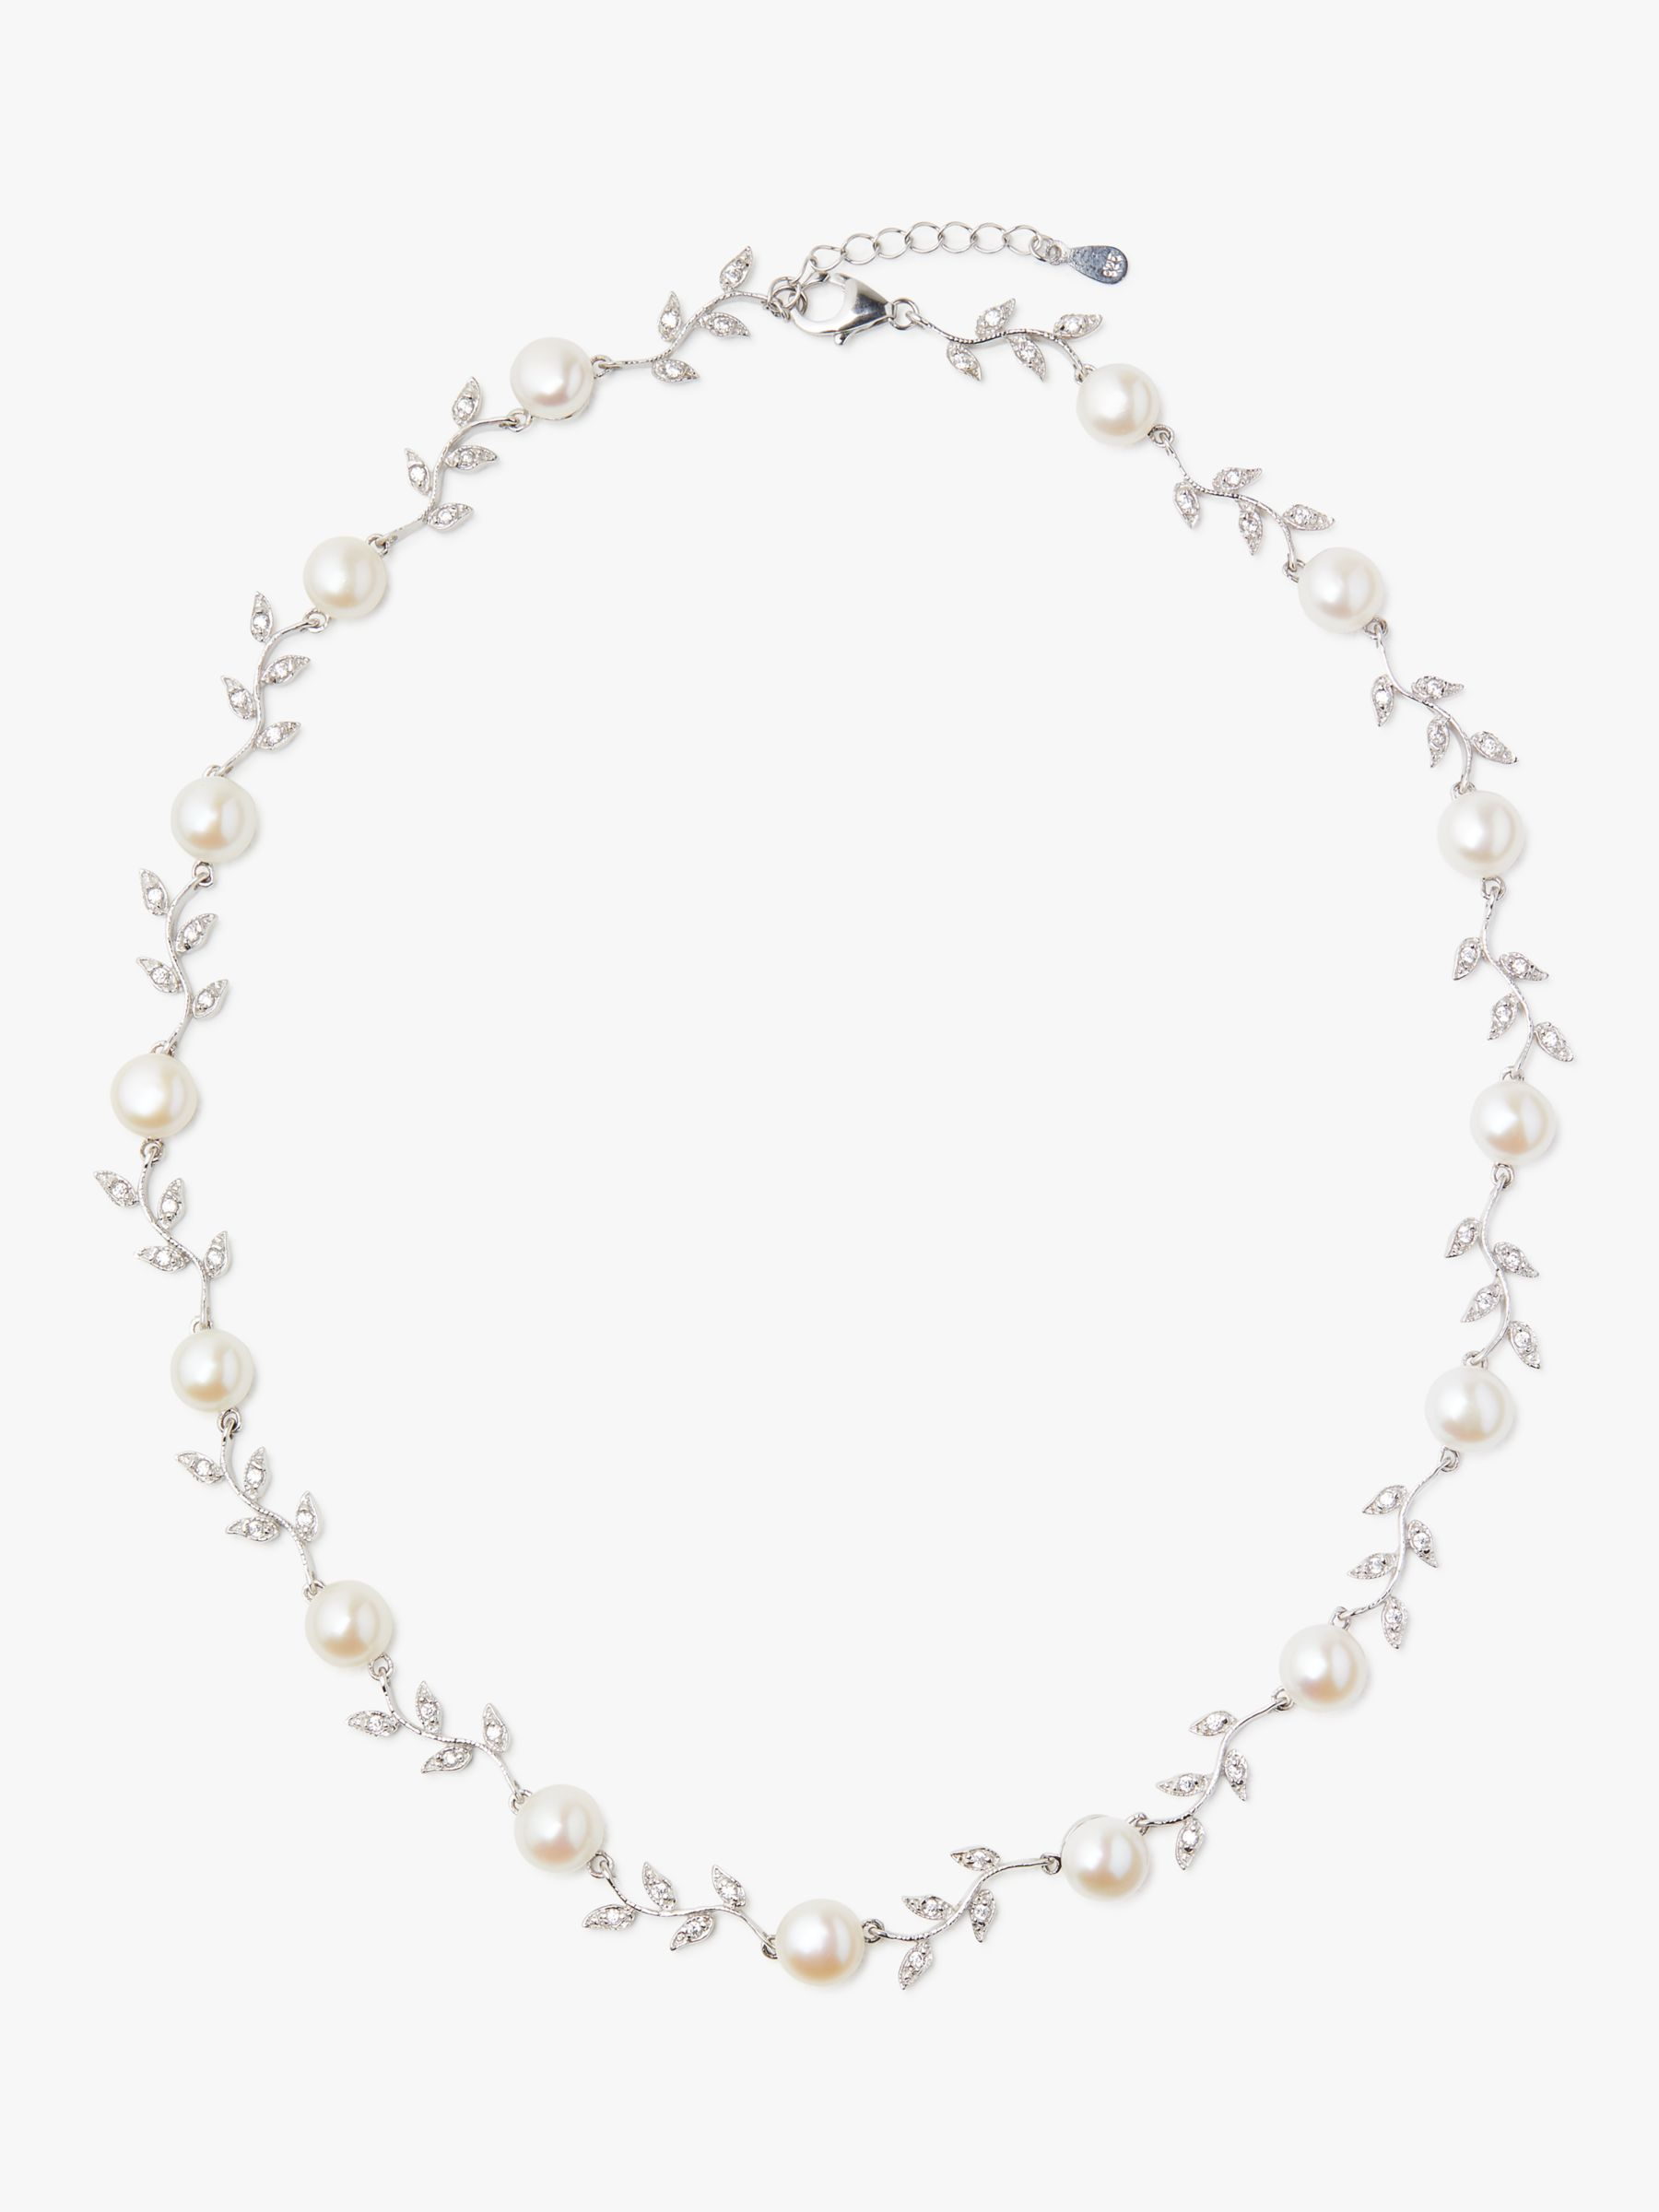 Lido Pearls Lido Pearls Leaf Pearl Necklace, Silver/White